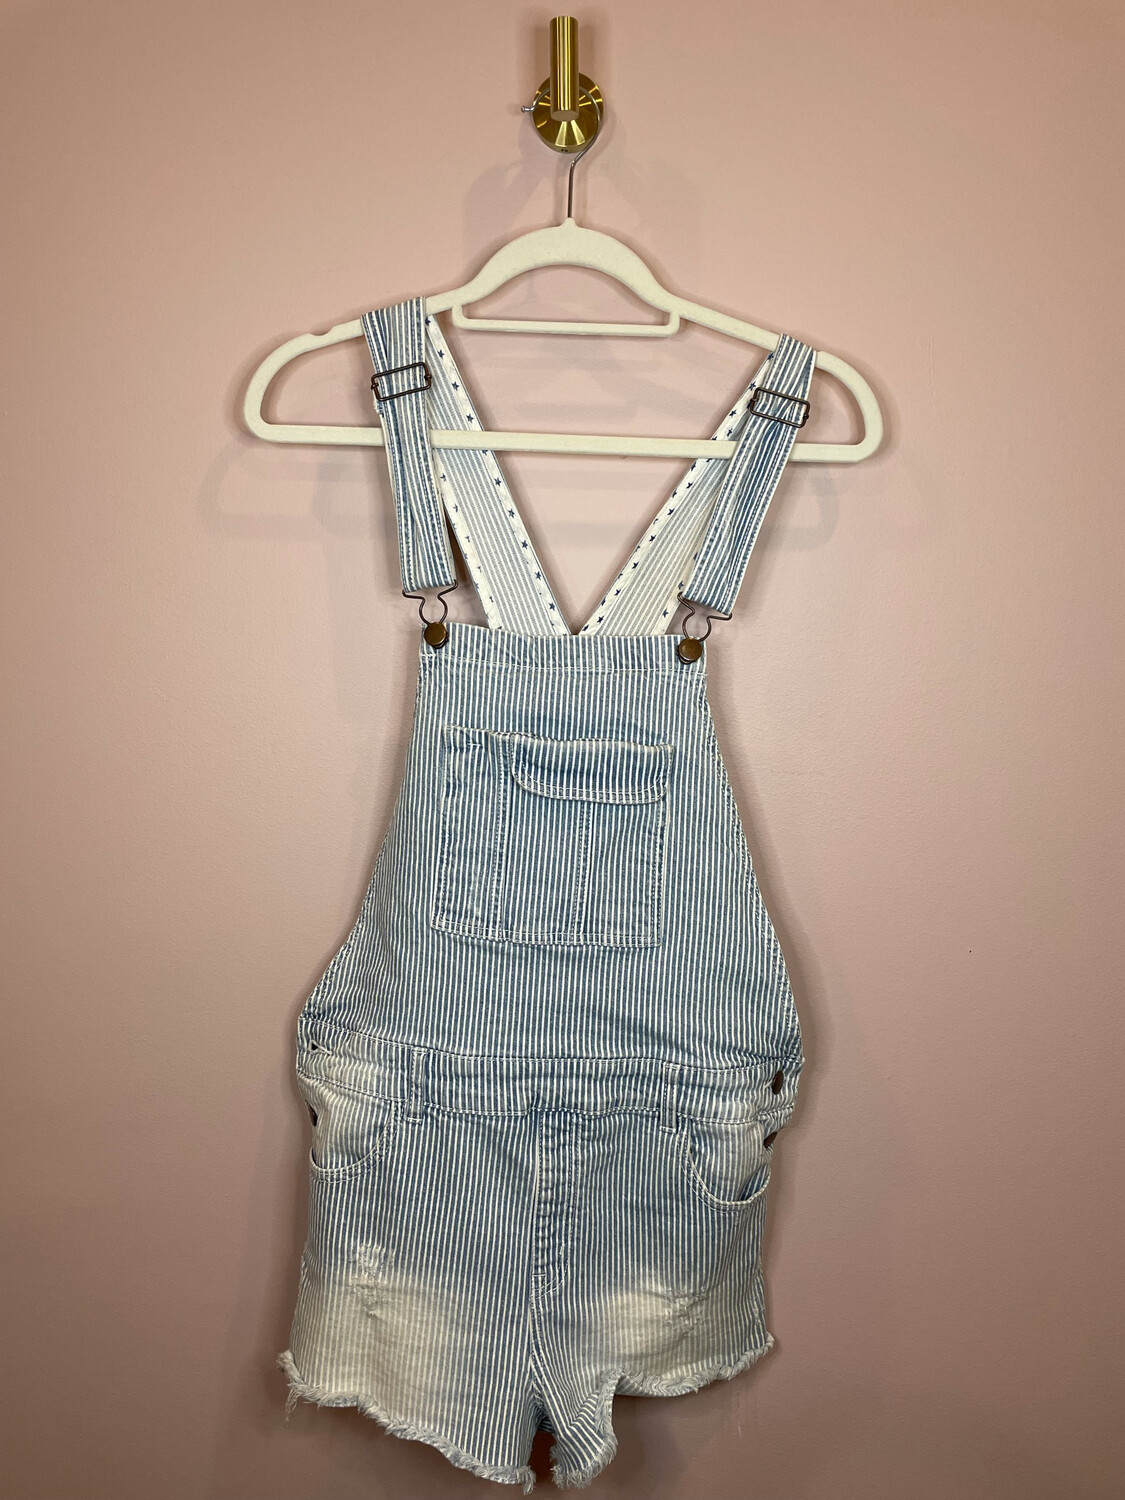 Forever 21 Chambray Striped Overall Shorts - Size 30